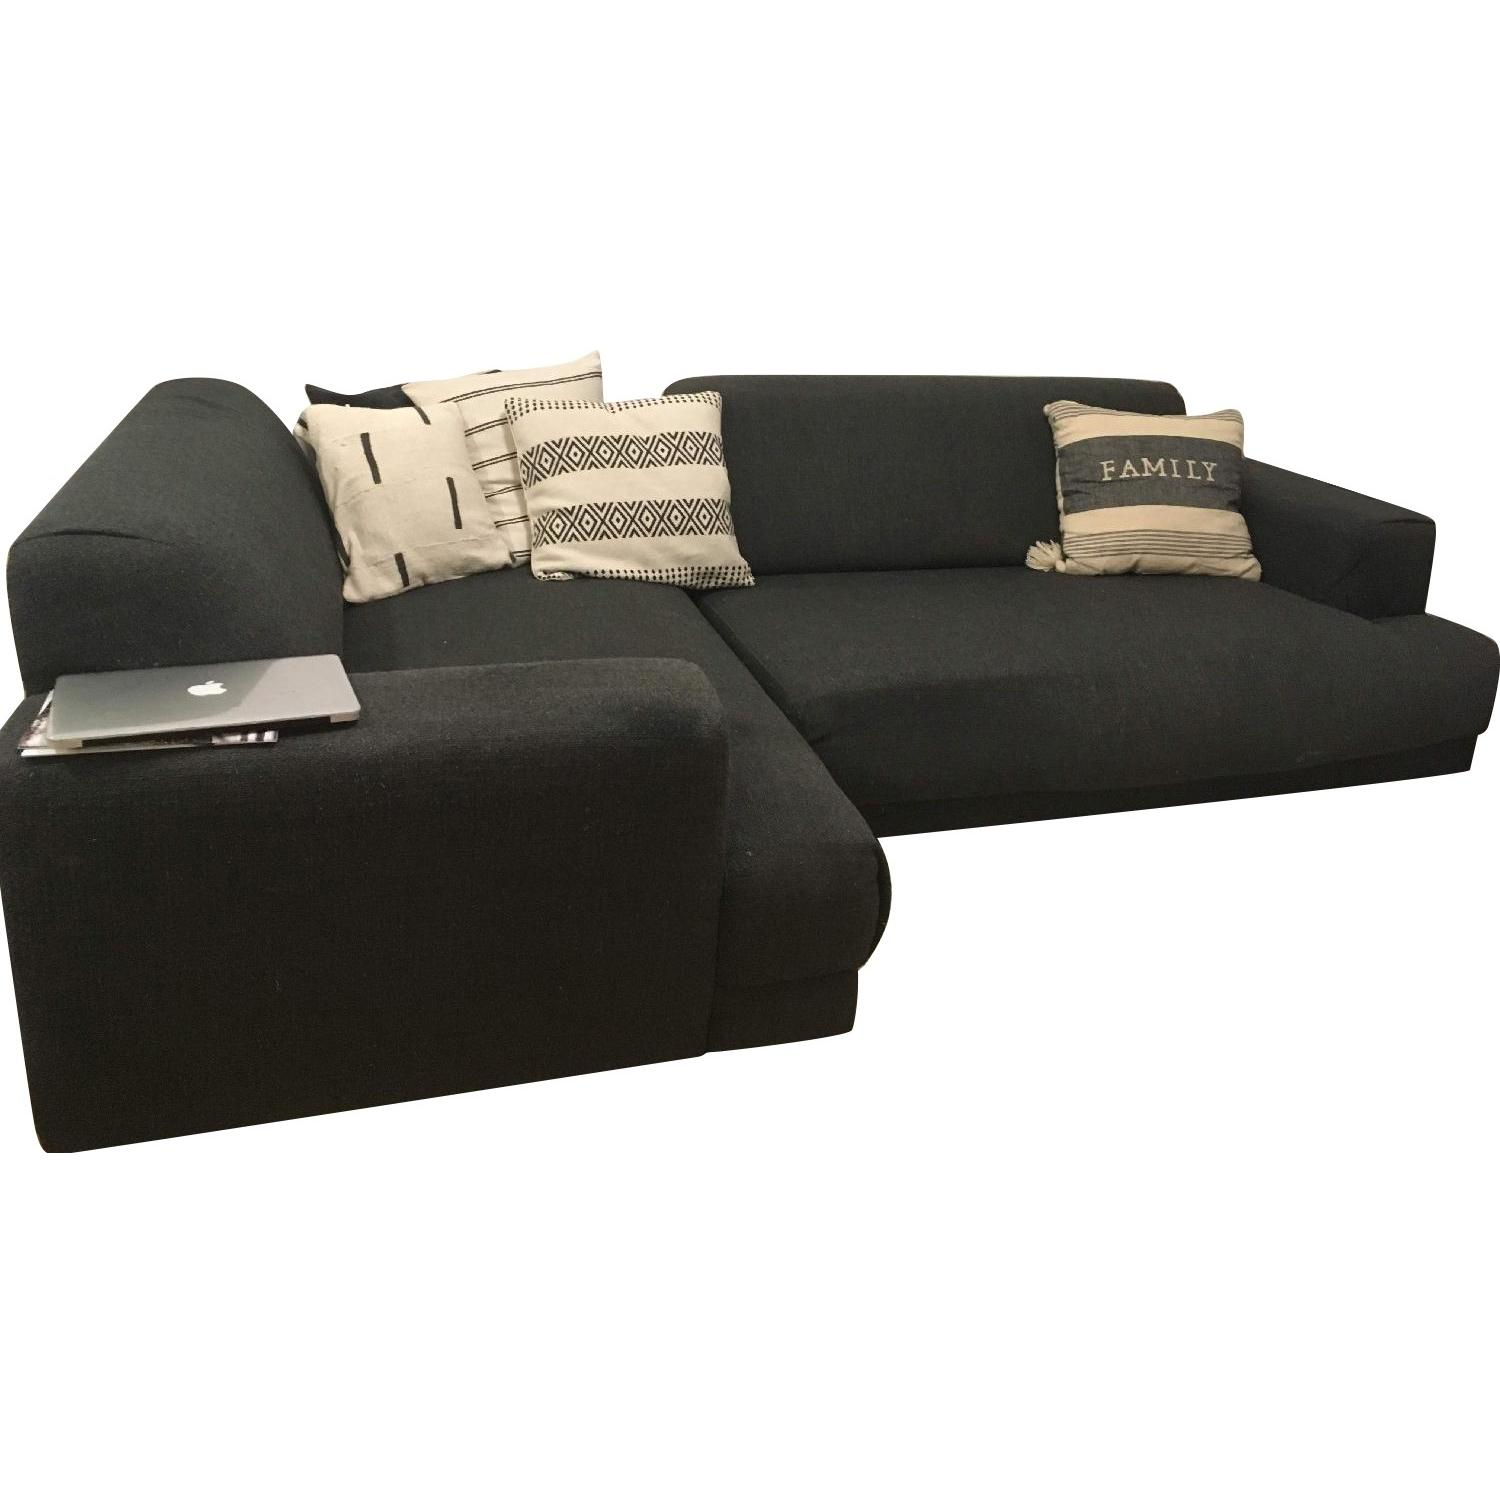 Crate & Barrel Annexe Collection Modular Sofa